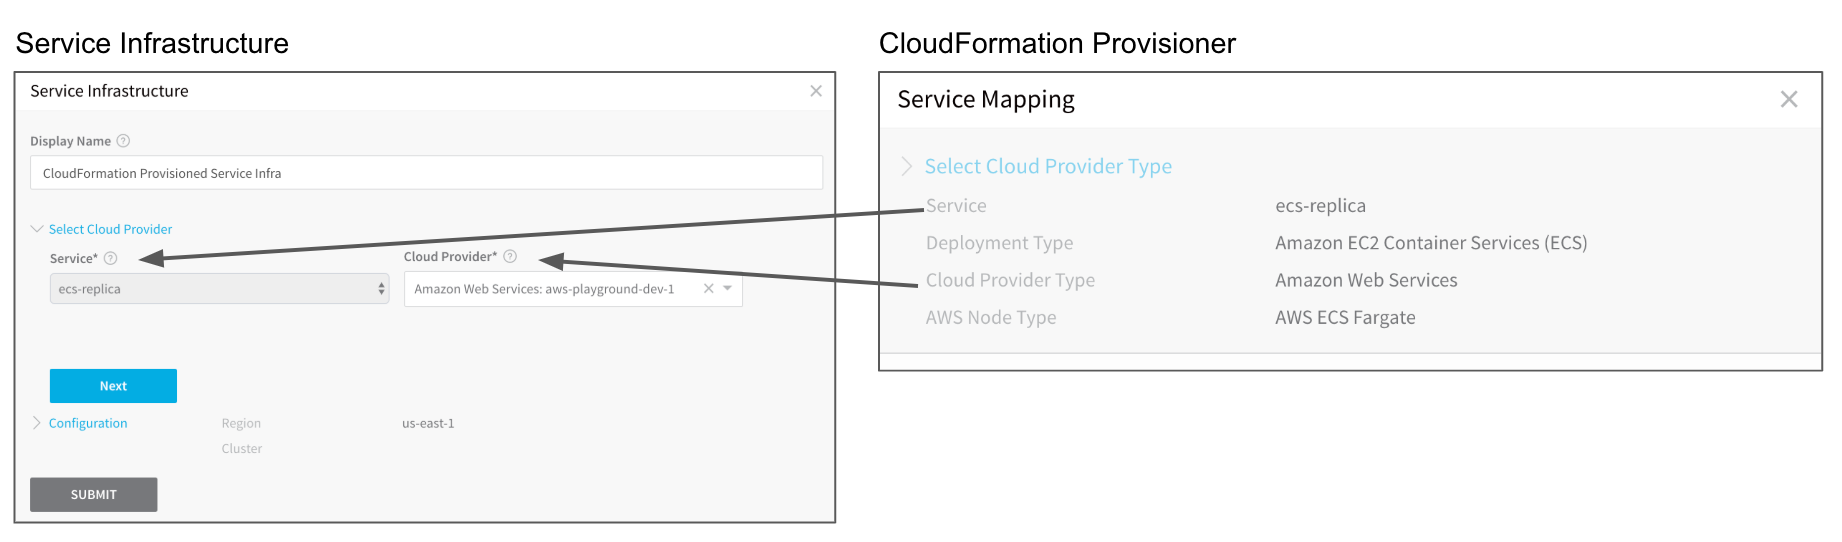 CloudFormation Provisioner - Harness io Docs